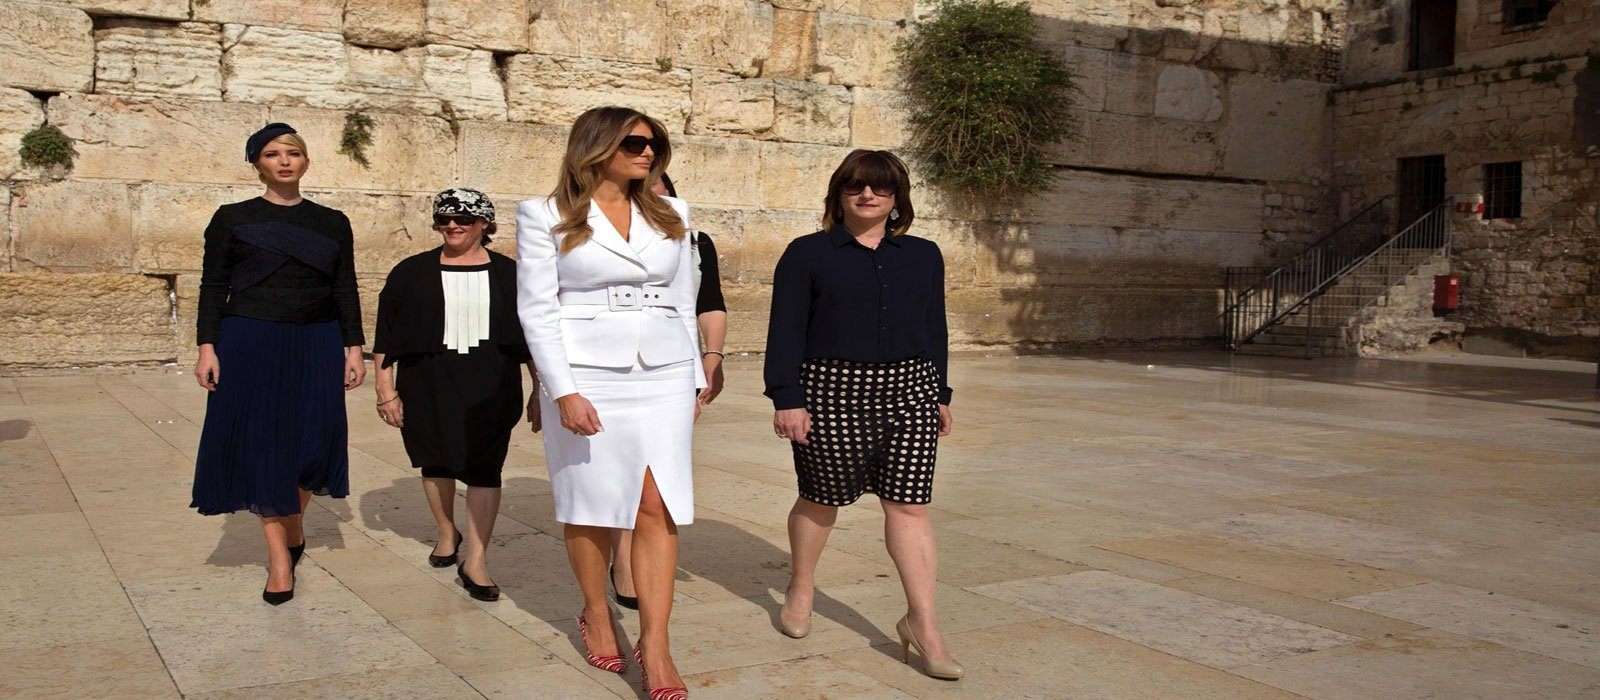 Ivanka (L) and First Lady Melania Trump (C) visit the Western Wall. Photo AFP